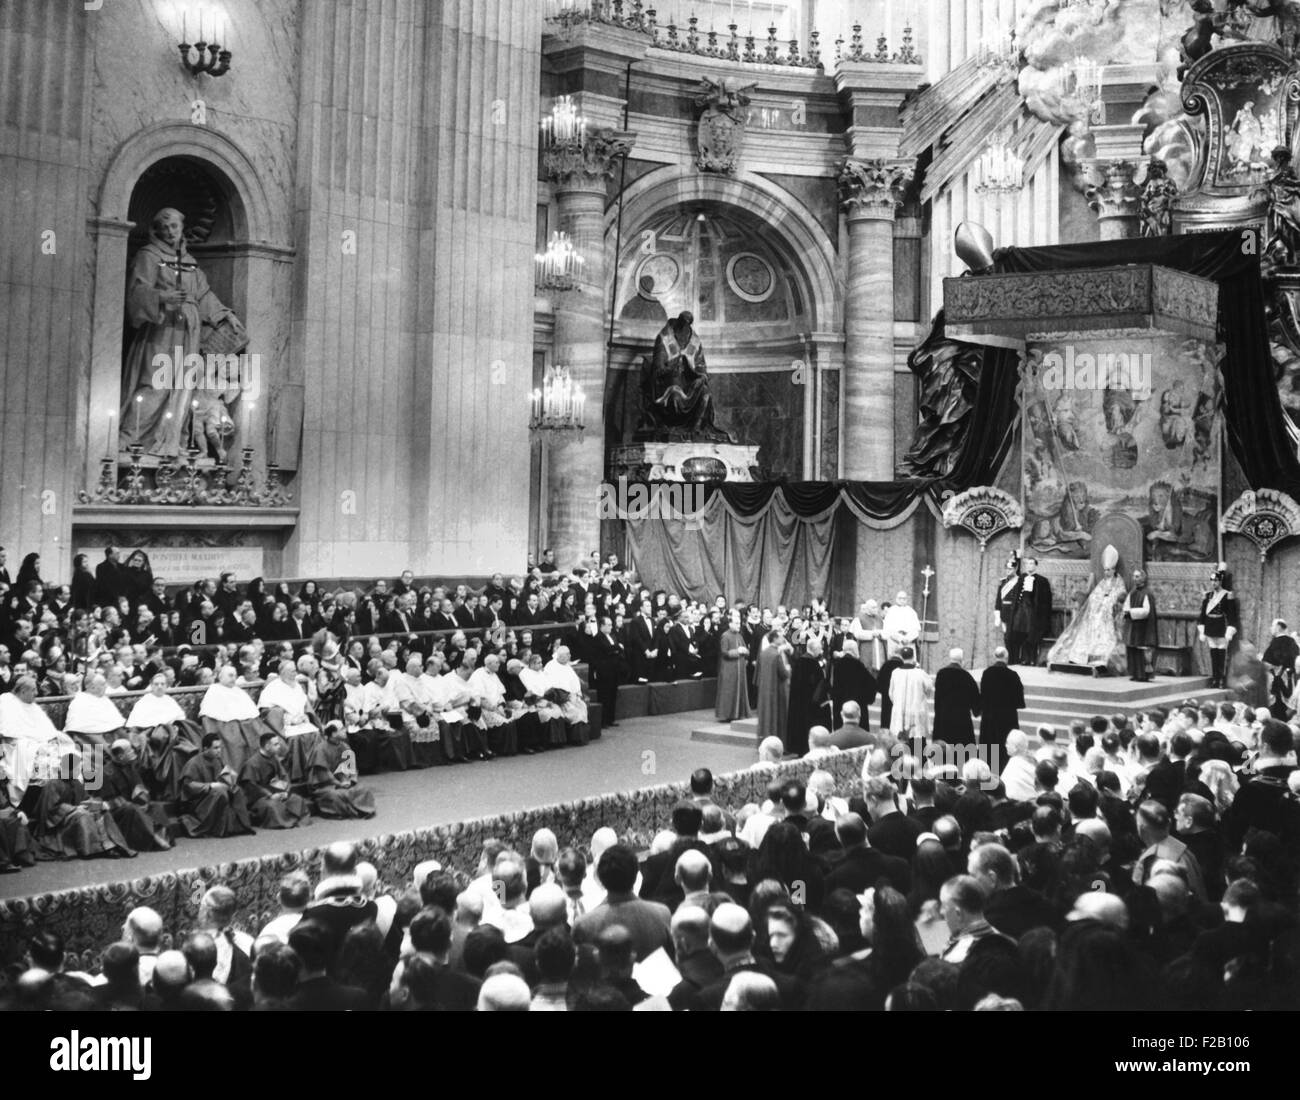 Pope Pius XII on a canopied throne at St. Peter's, conferred the Red Hat upon 17 new cardinals. Jan. 17, 1953 - Stock Image